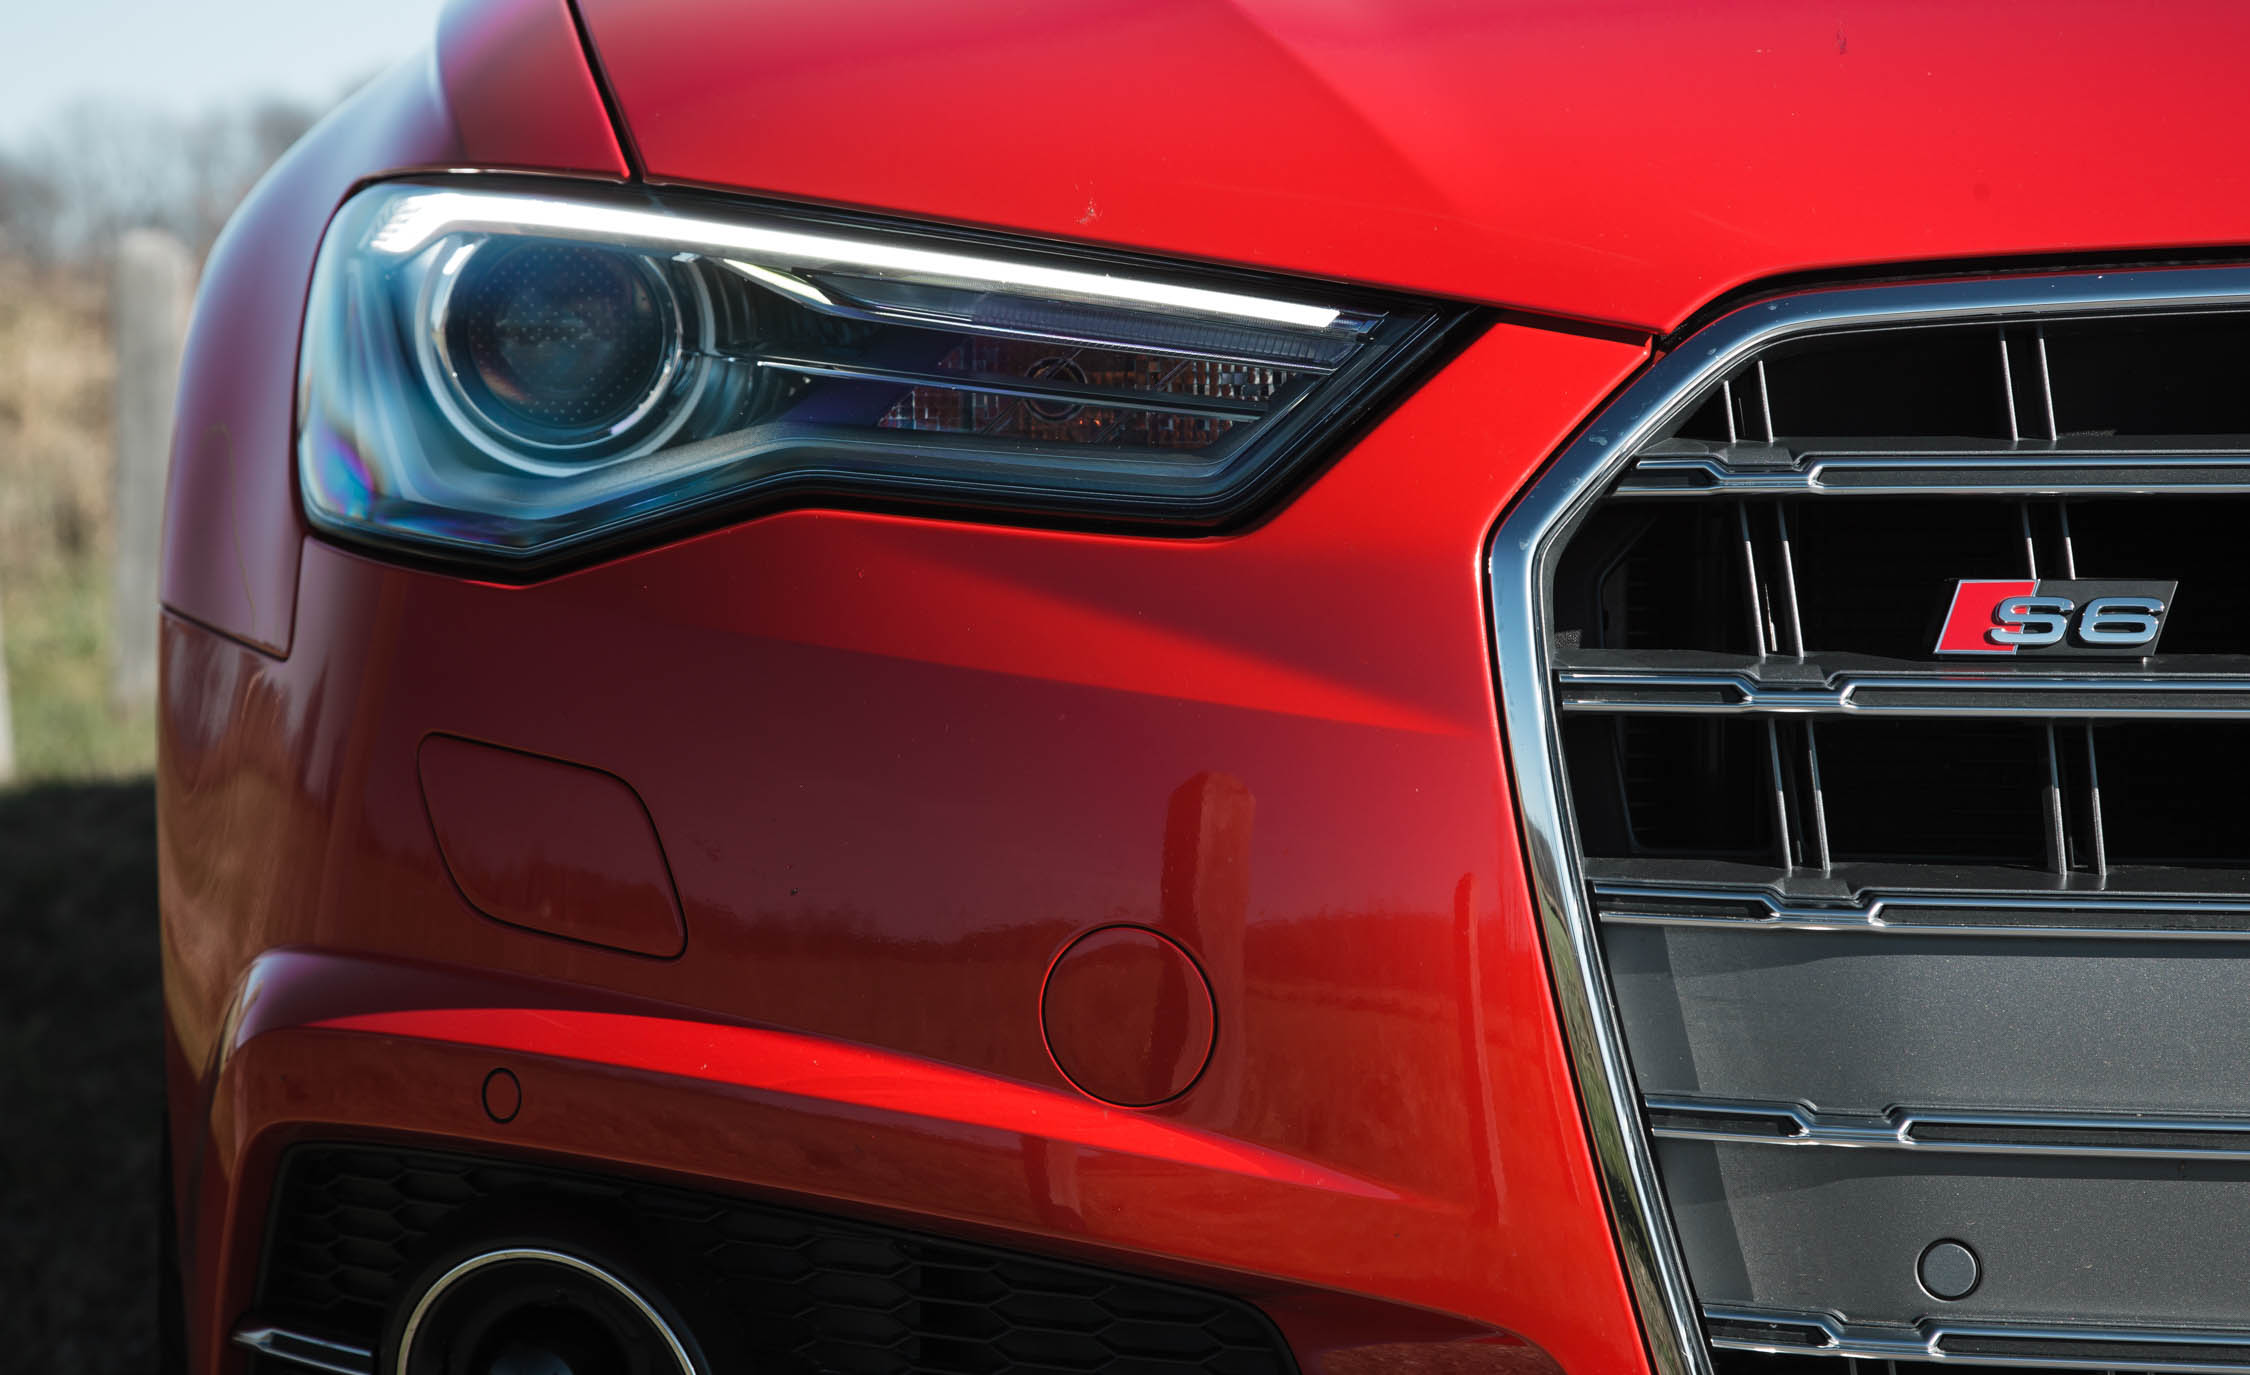 2016 Audi S6 Exterior Headlight